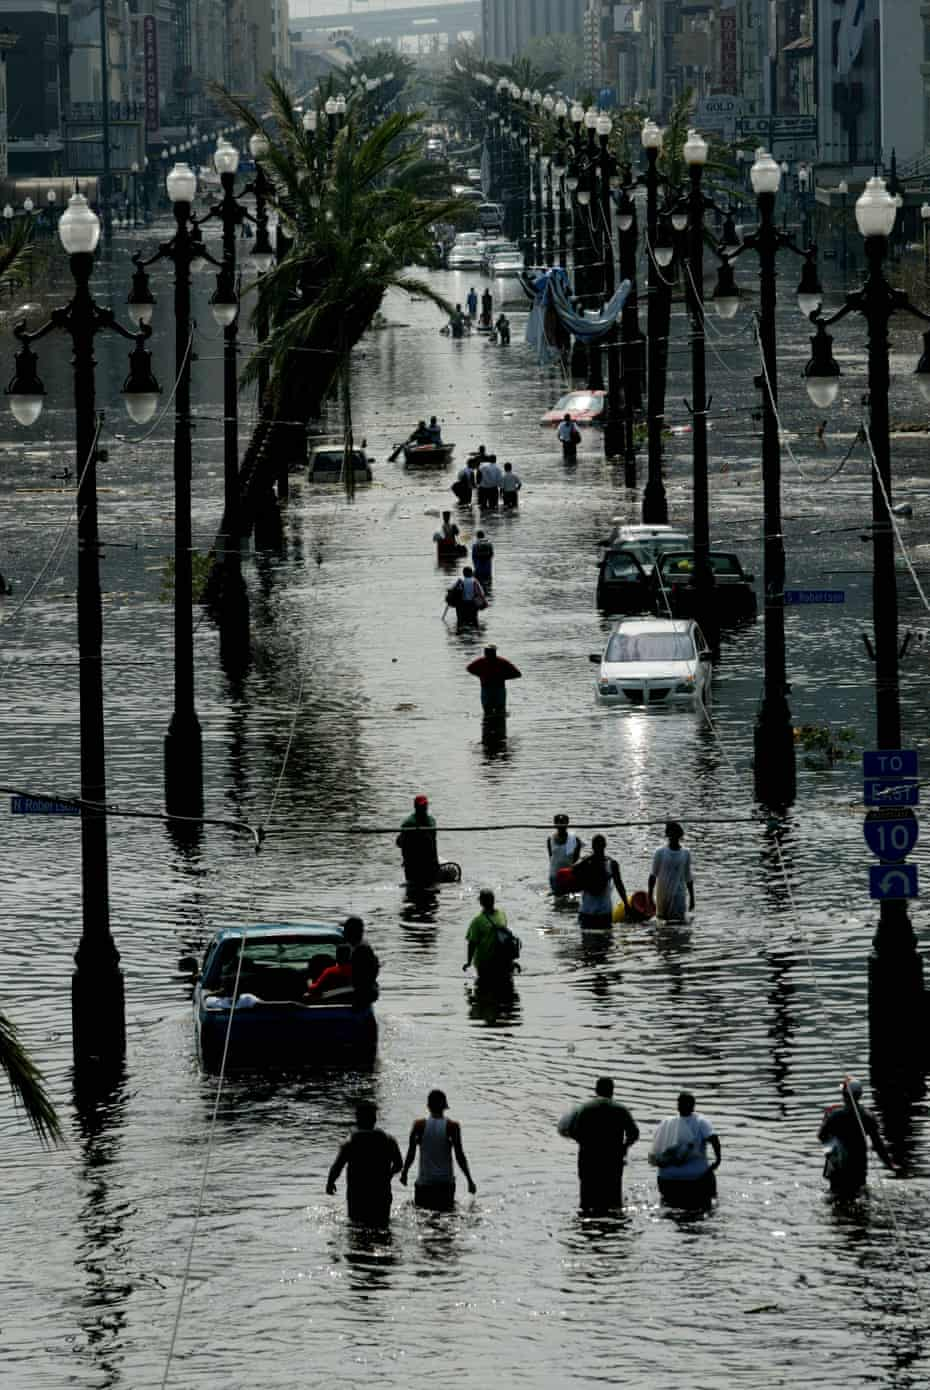 Stranded people make their way along Canal Street in New Orleans on 30 Aug 2005 as Hurricane Katrina struck